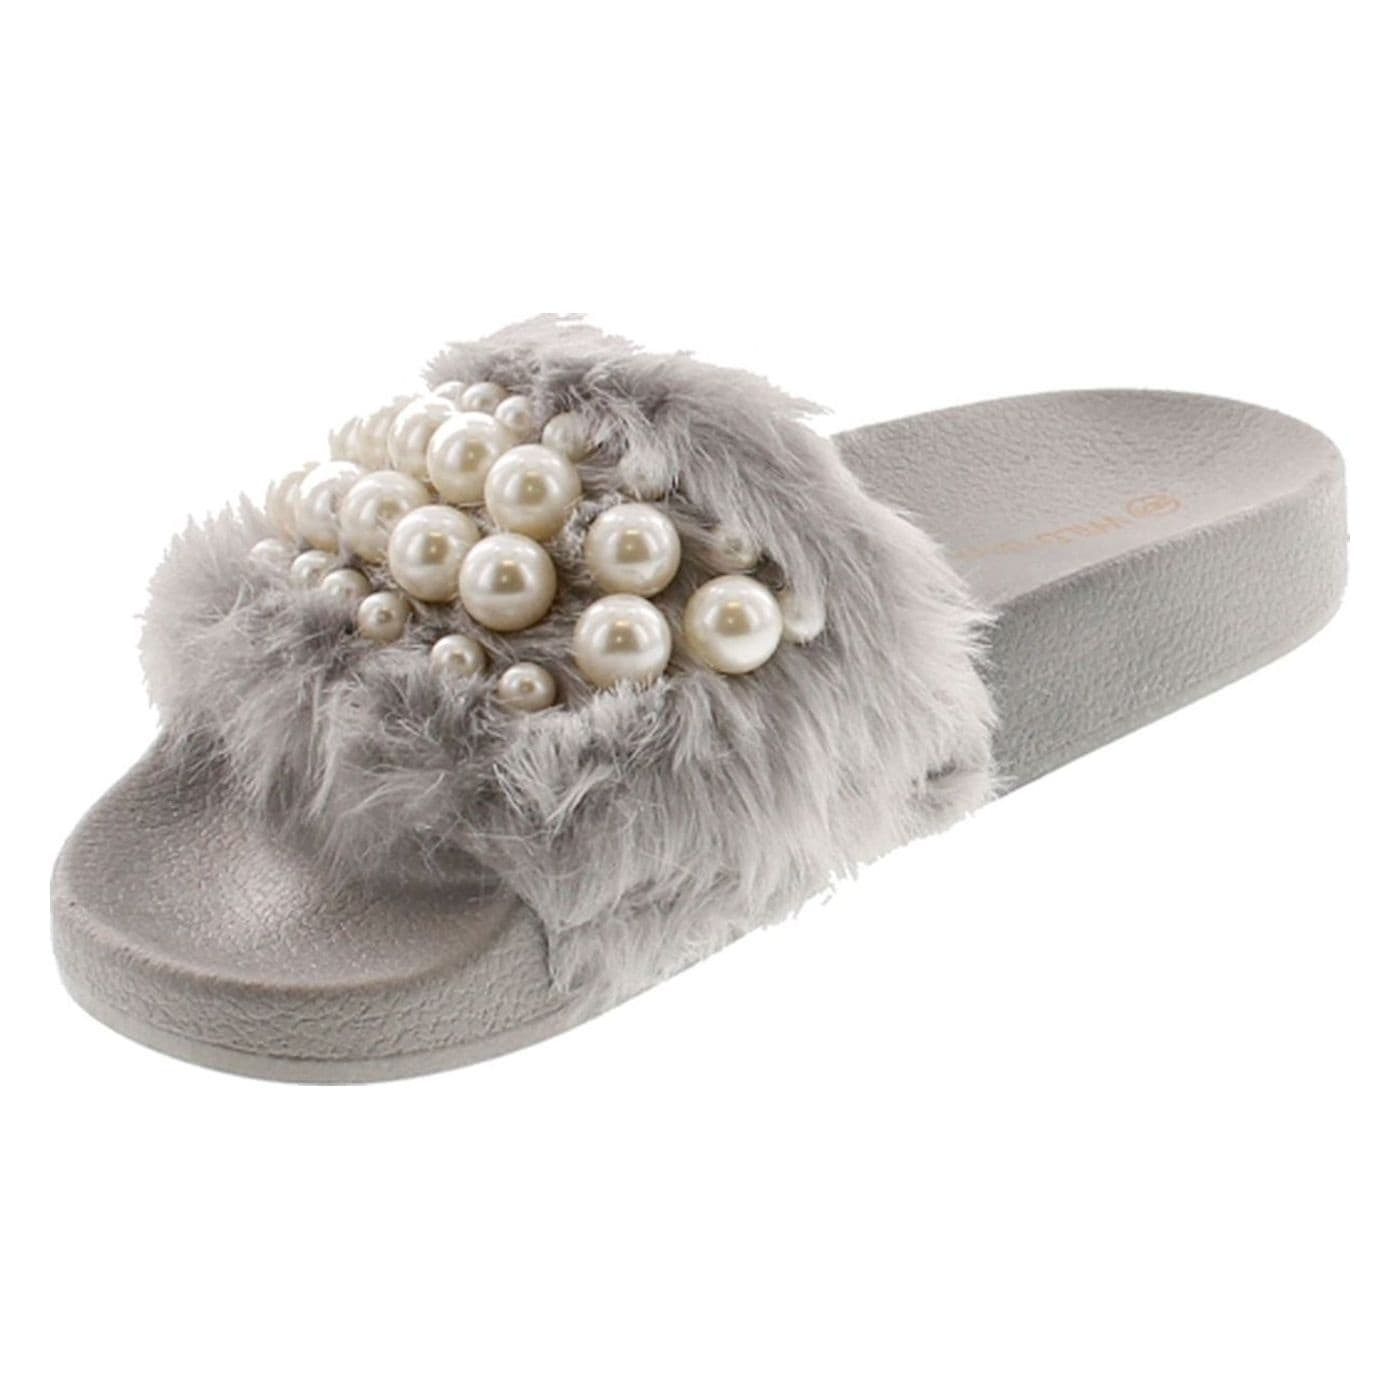 022f3713105 Shop Wild Diva Women s Matty-04A Embellished Pearl Faux Fur Platform Wedge  Slide Sandal - Free Shipping On Orders Over  45 - Overstock - 20908533